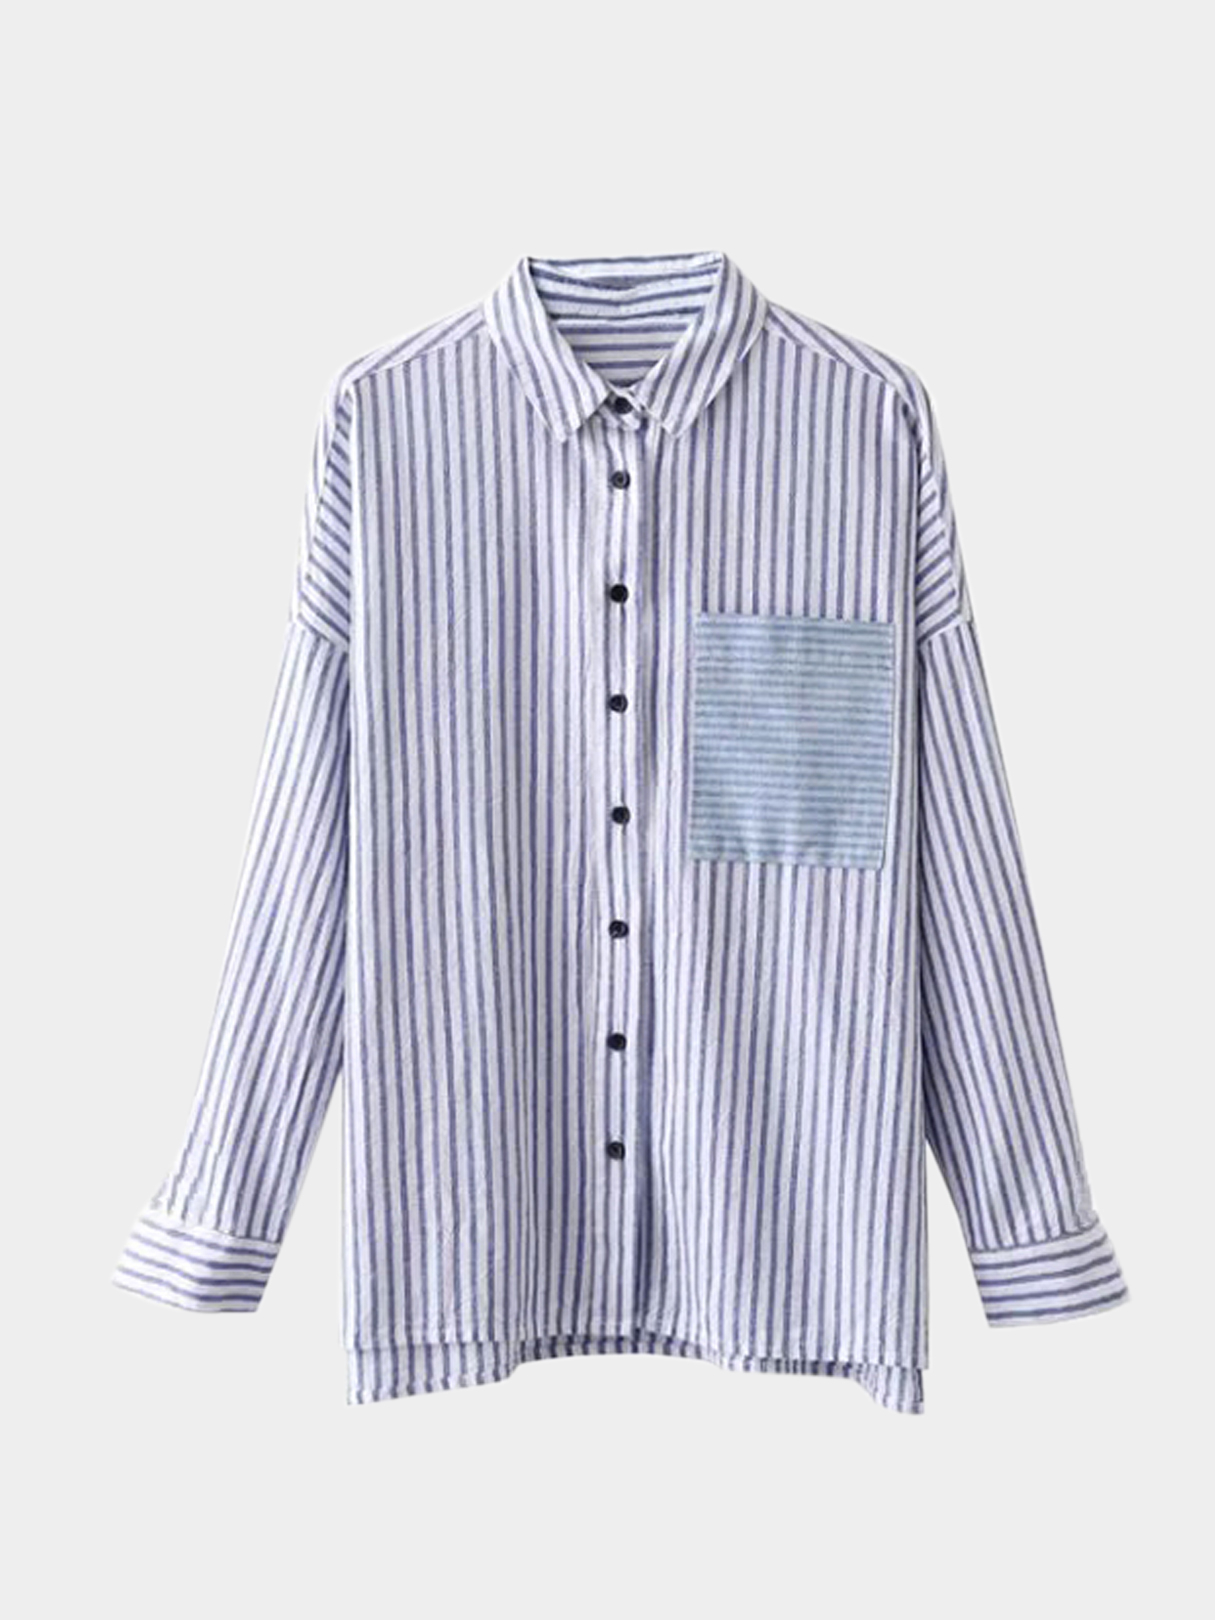 Casual Stripe Pattern Shirt In Blue And White blue stripe pattern shirt in sweet design